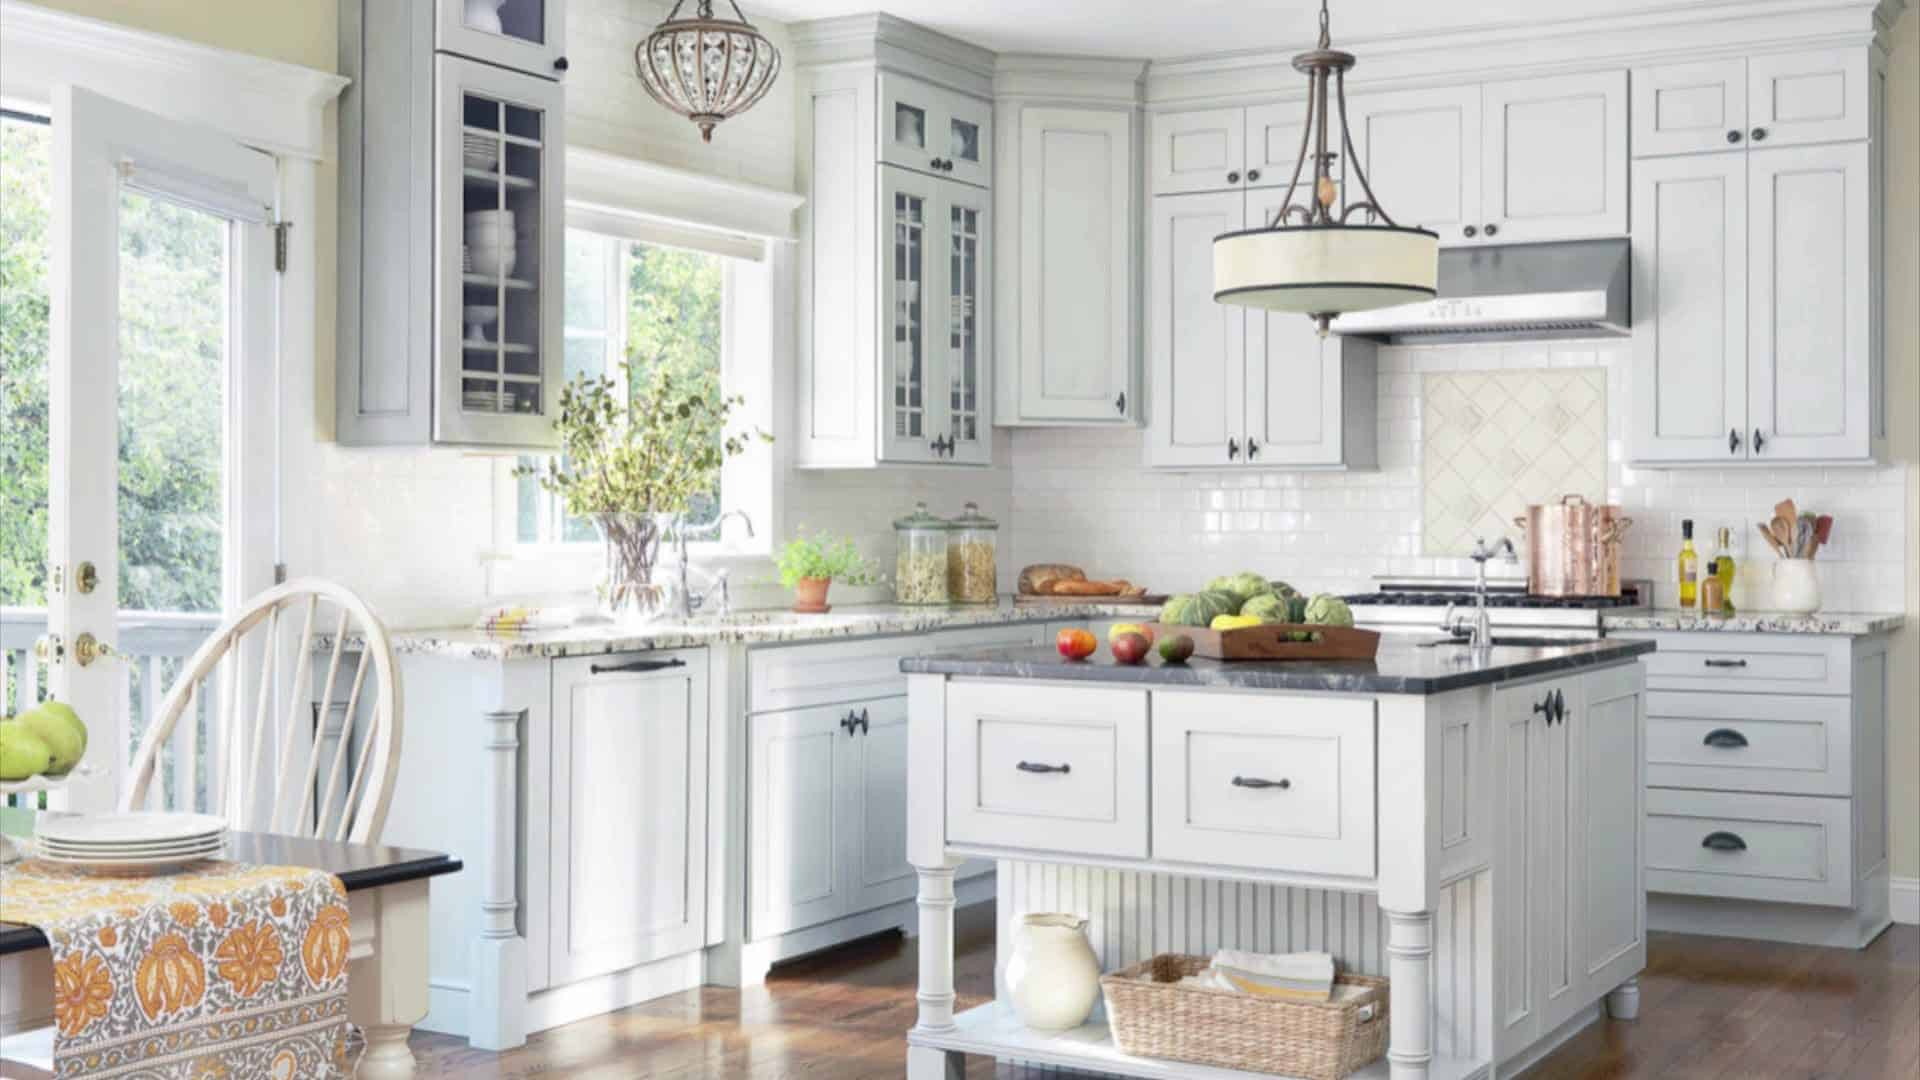 Custom cabinetry means the cabinets are designed to fit your kitchen perfectly.